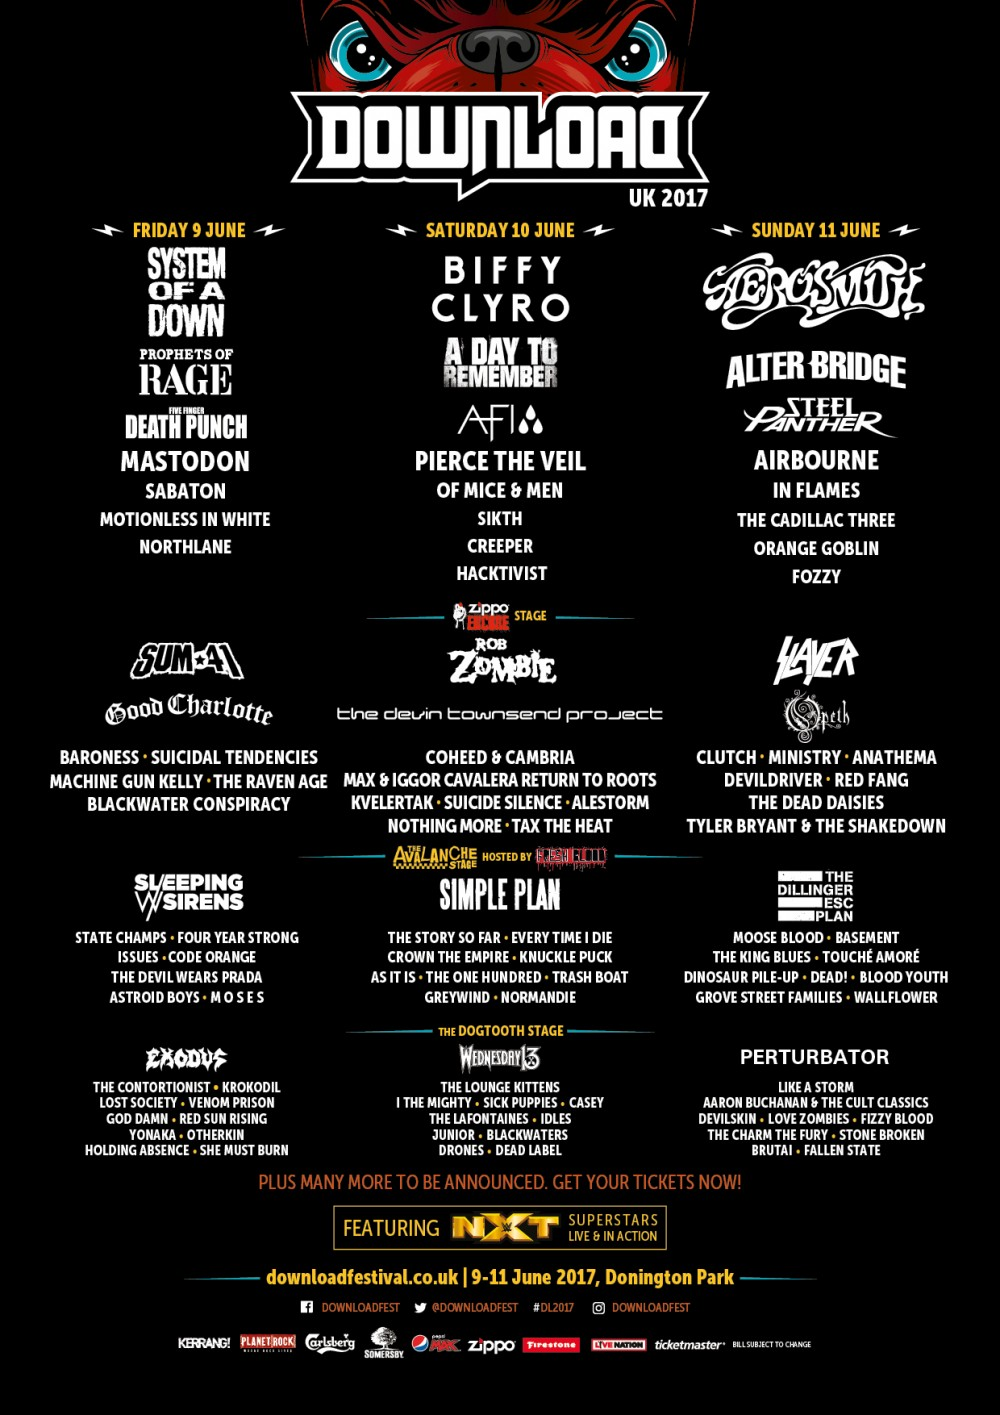 DOWNLOAD Festival 2017 Announces more than 20 more bands!